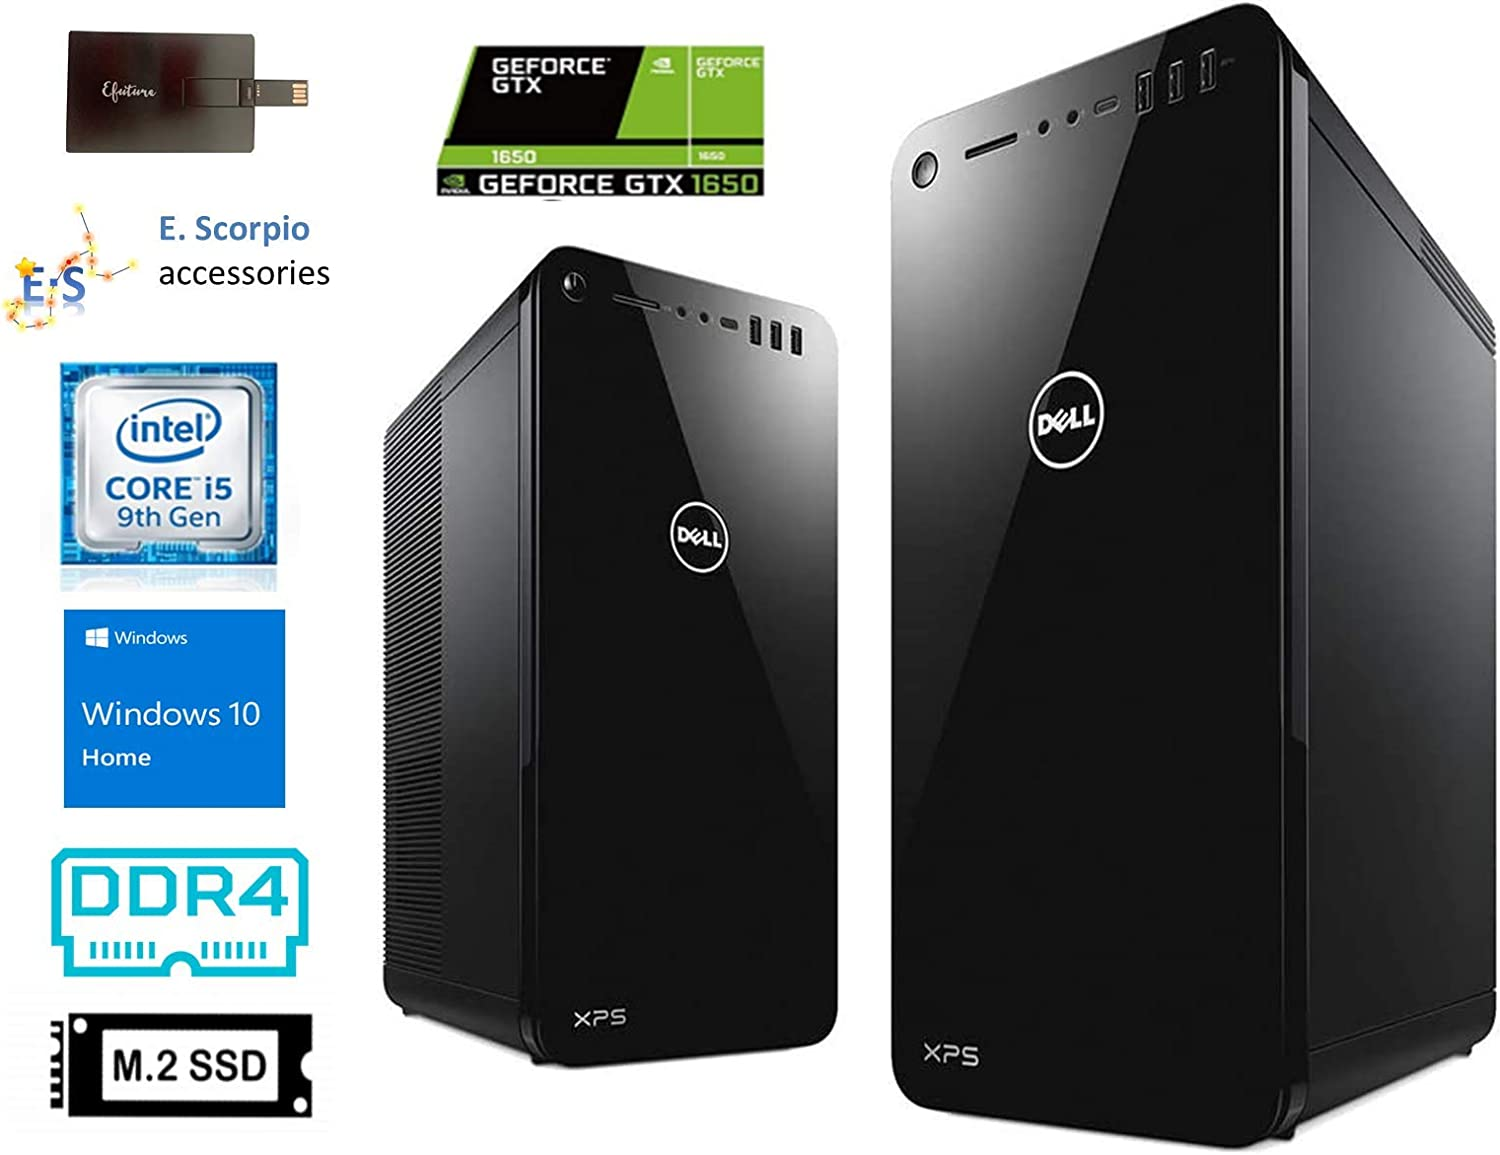 2020 Dell XPS Tower Desktop Computer, 9th Gen Intel Core i5-9400, 32GB RAM, 1TB SSD, 2TB HDD, GeForce GTX 1650 Graphics, Wired KB, Waves MaxxAudio, HDMI, Win 10 Home with E.S 32GB USB Card